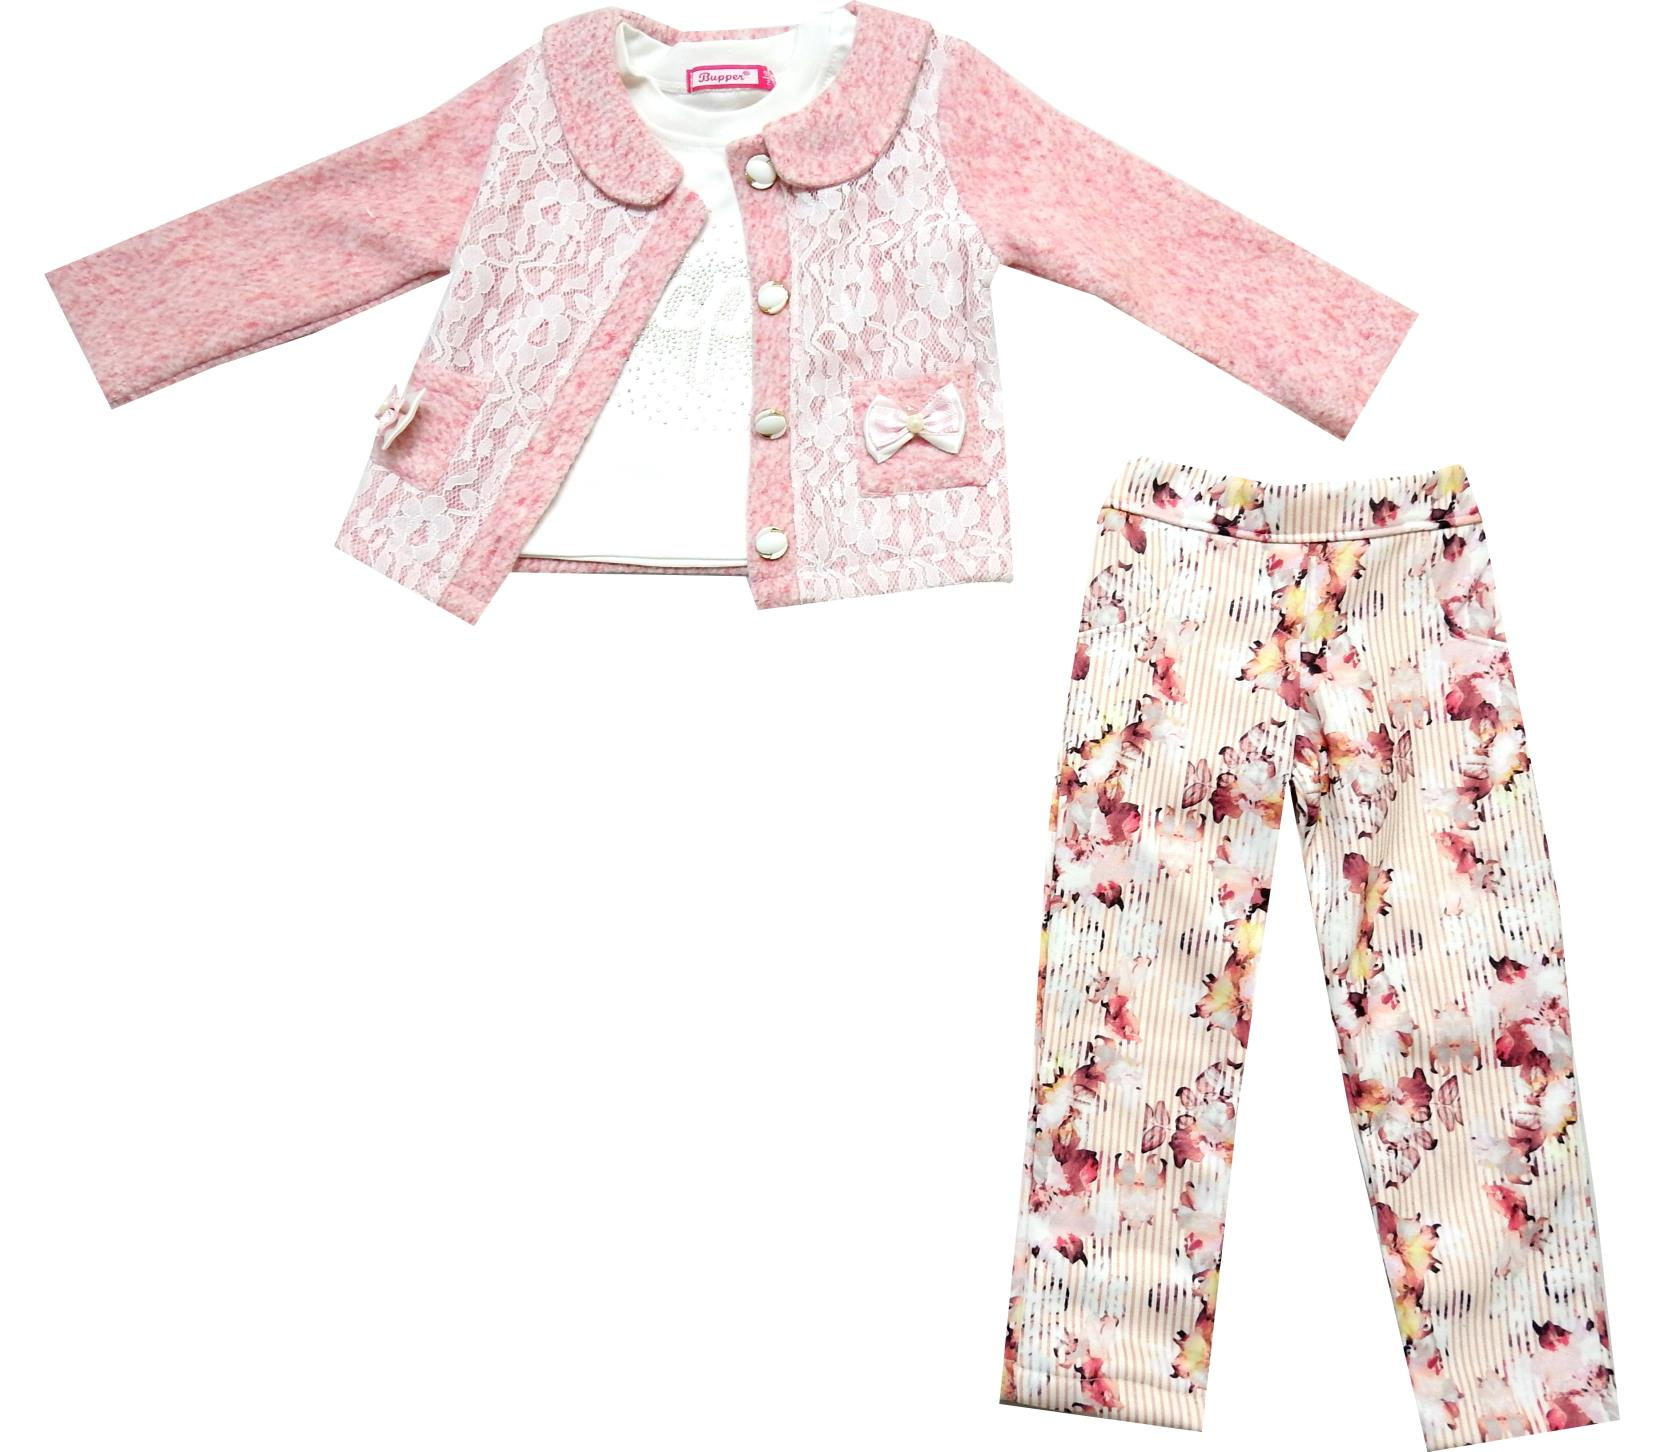 WHOLESALE LACE FABRIC EMBROIDERY JACKET, LONG SLEEVE T-SHIRT AND TROUSER TRIPLE SET FOR GIRL (2-3-4 AGE)